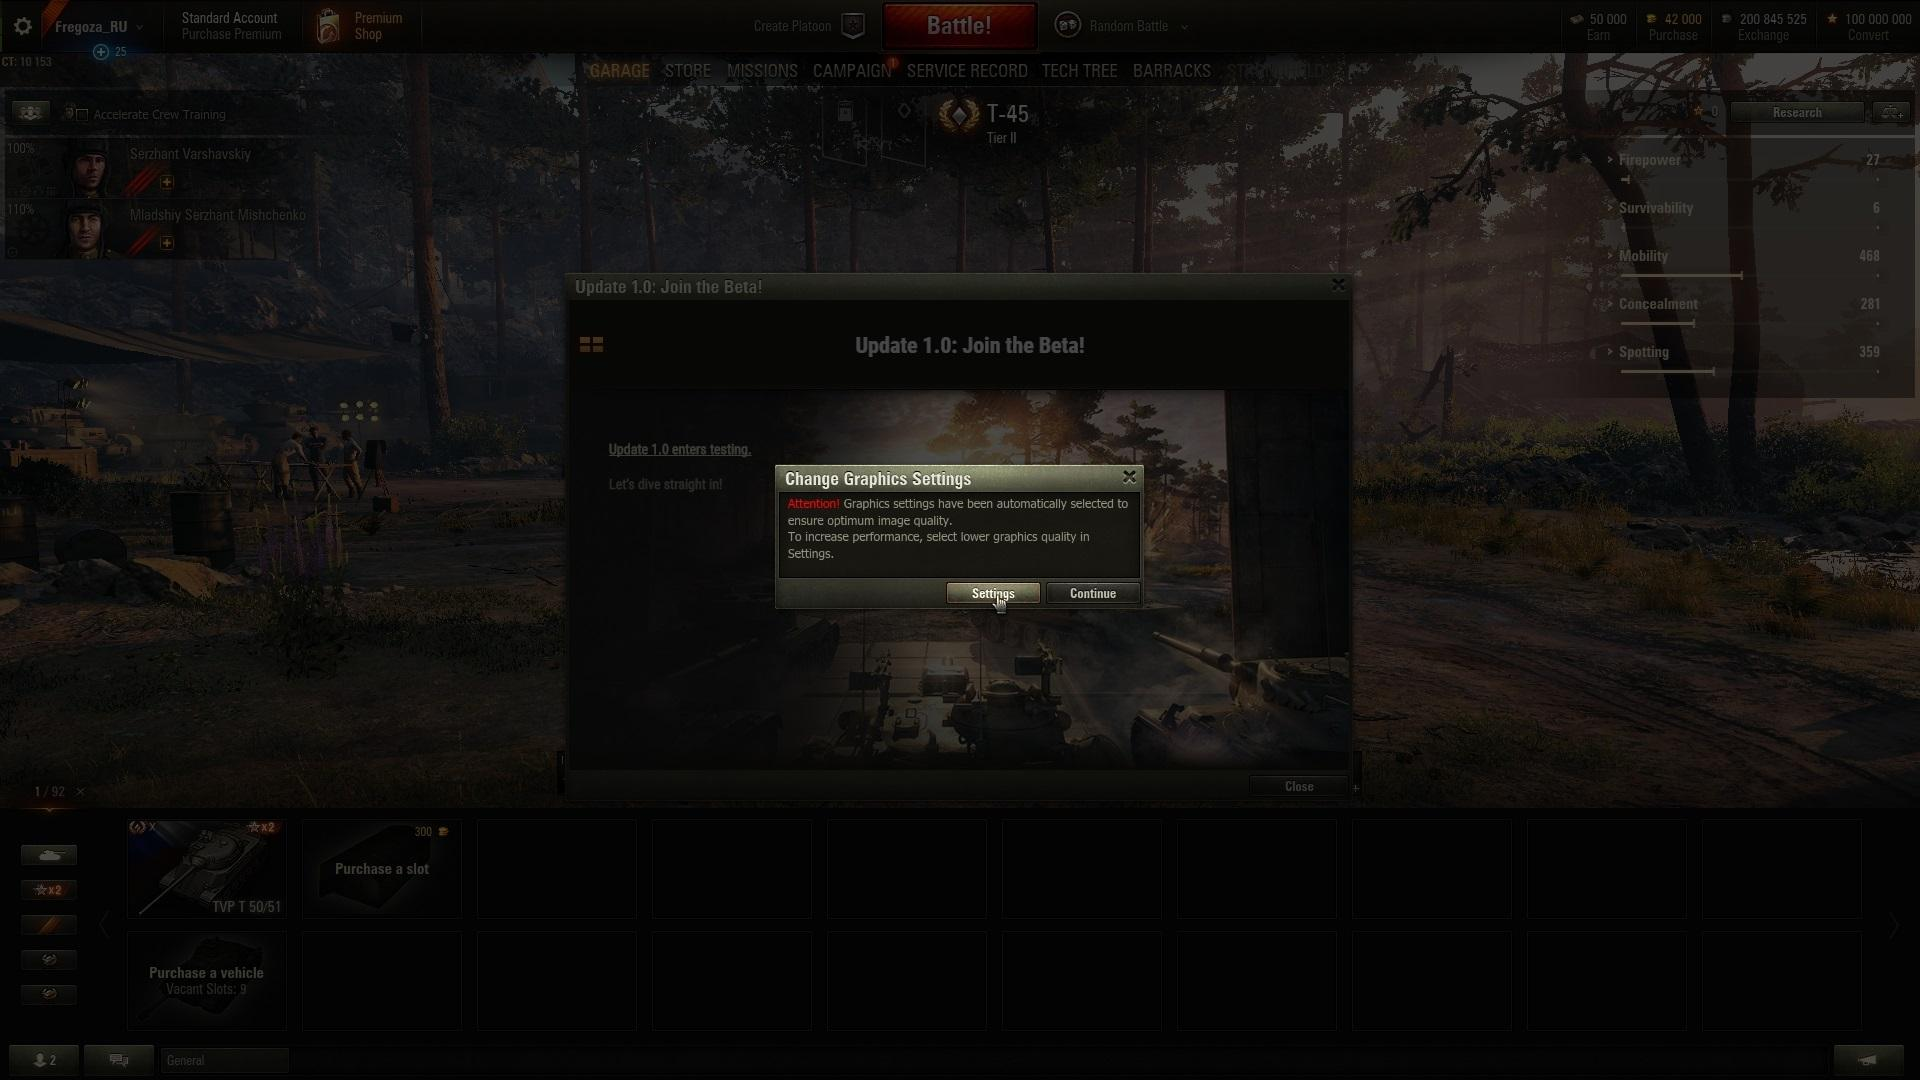 Update 1 0 Is Here   General News   World of Tanks